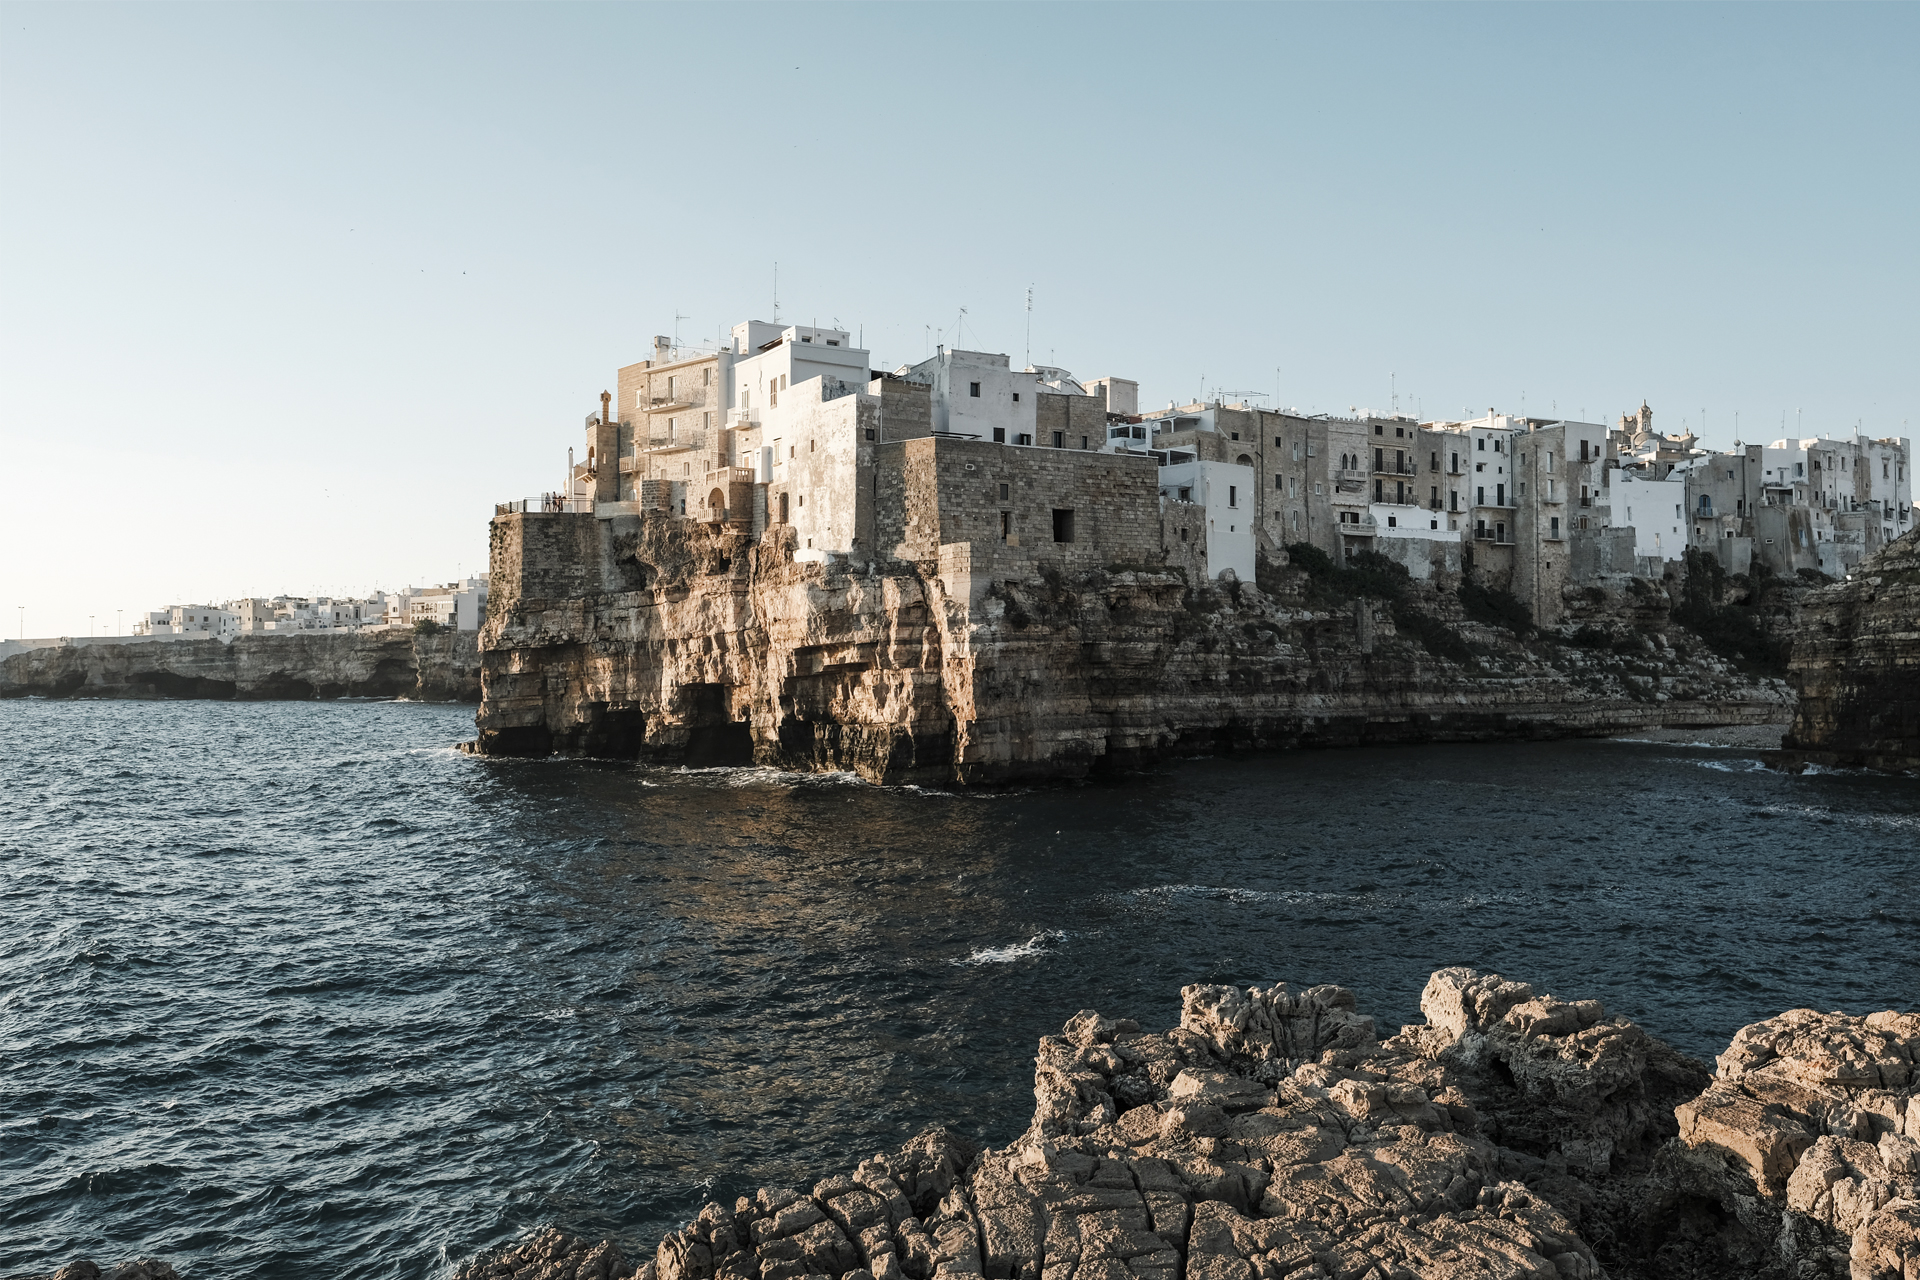 View of the city over the cliffs and the blue sea of Polignano a Mare